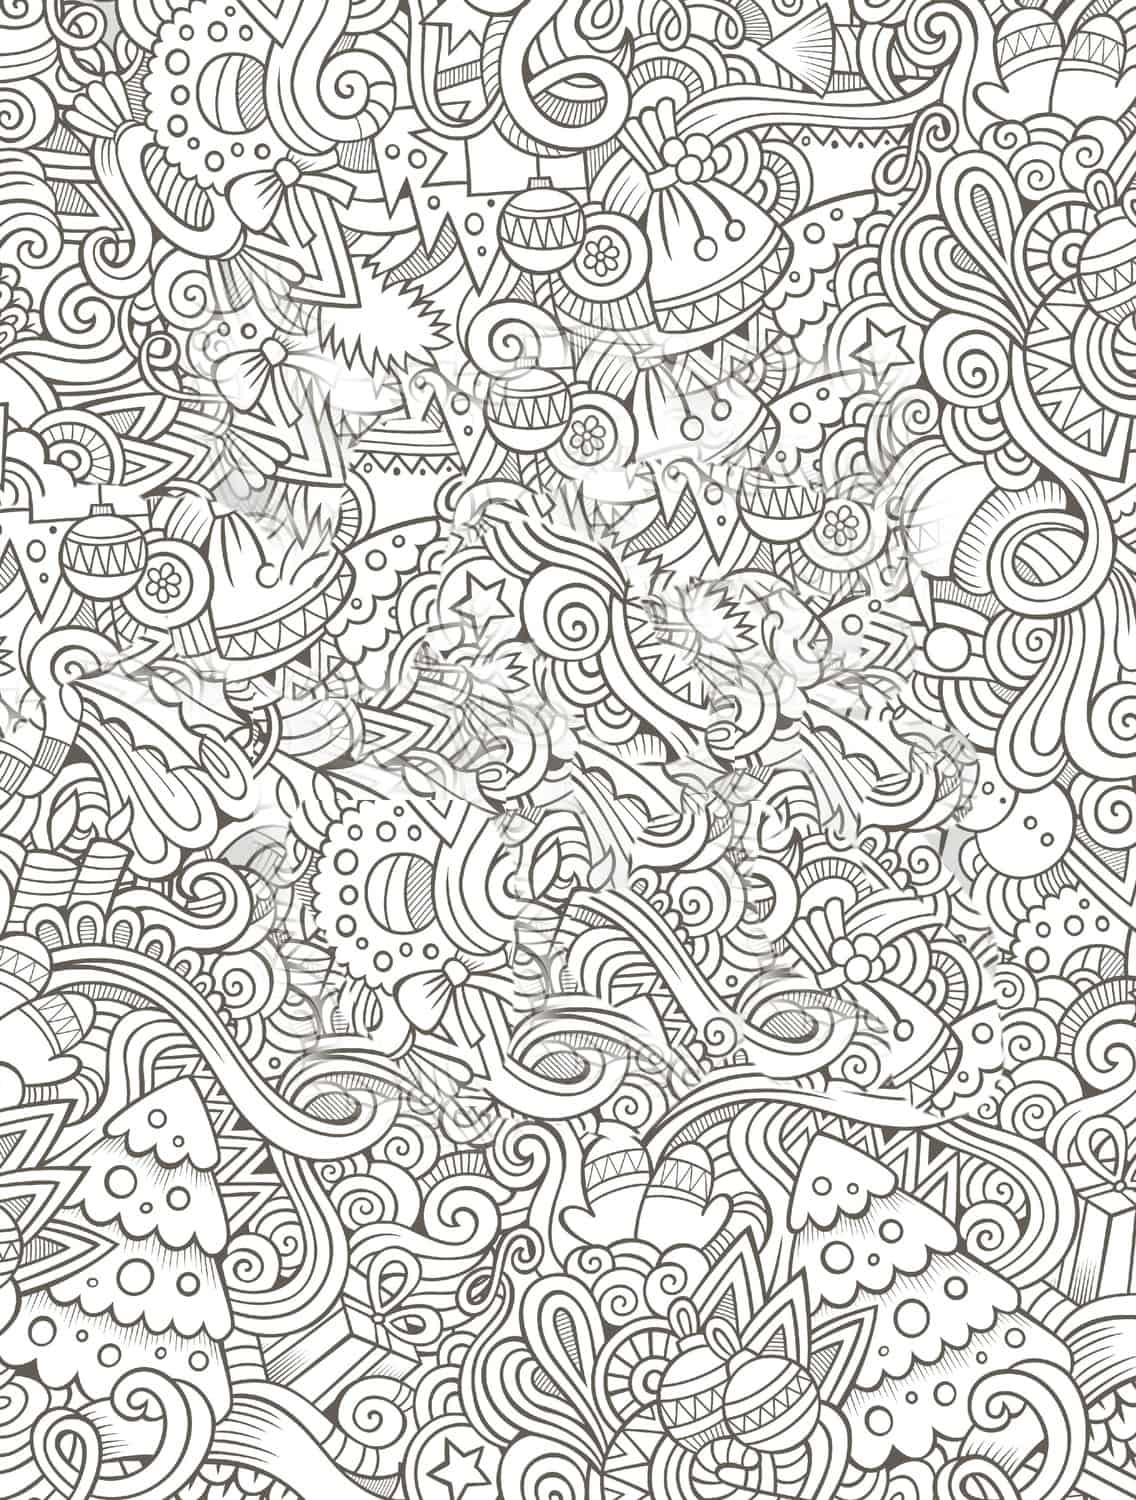 Busy Coloring Page For Free Christmas Gift Small